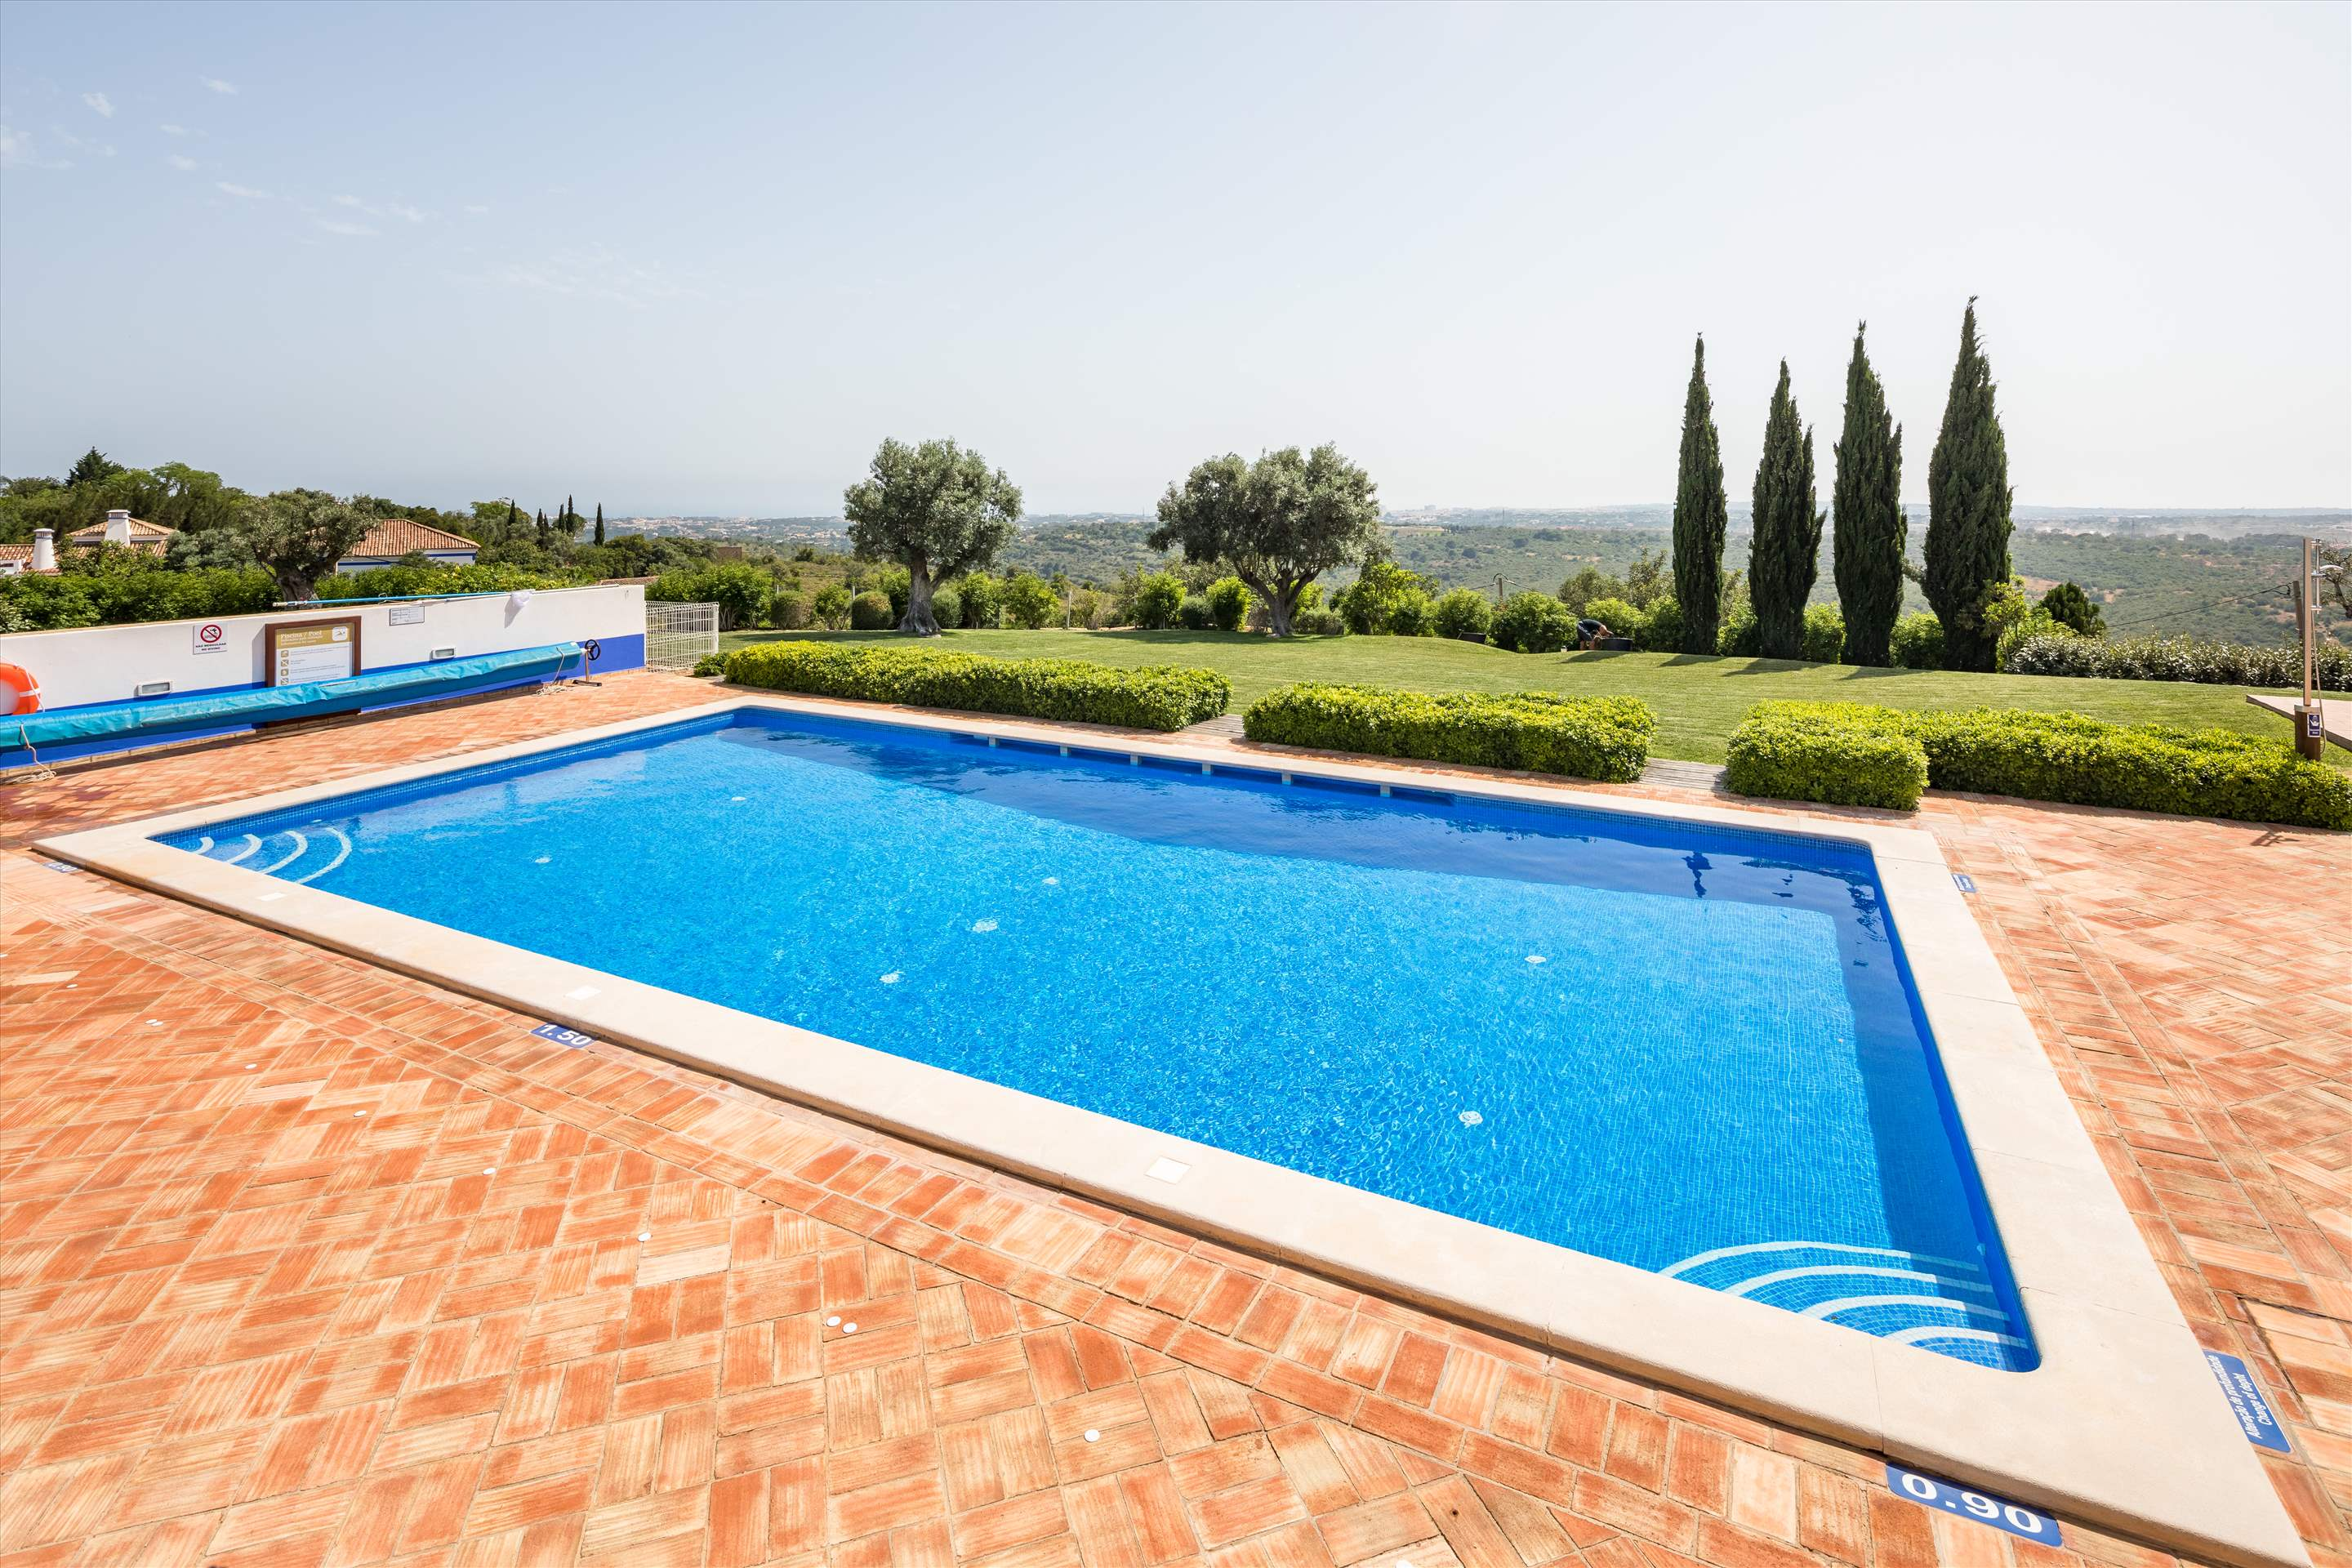 Casa Cahombo, 5 bedroom rate for 7-10 persons, 5 bedroom villa in Vilamoura Area, Algarve Photo #11